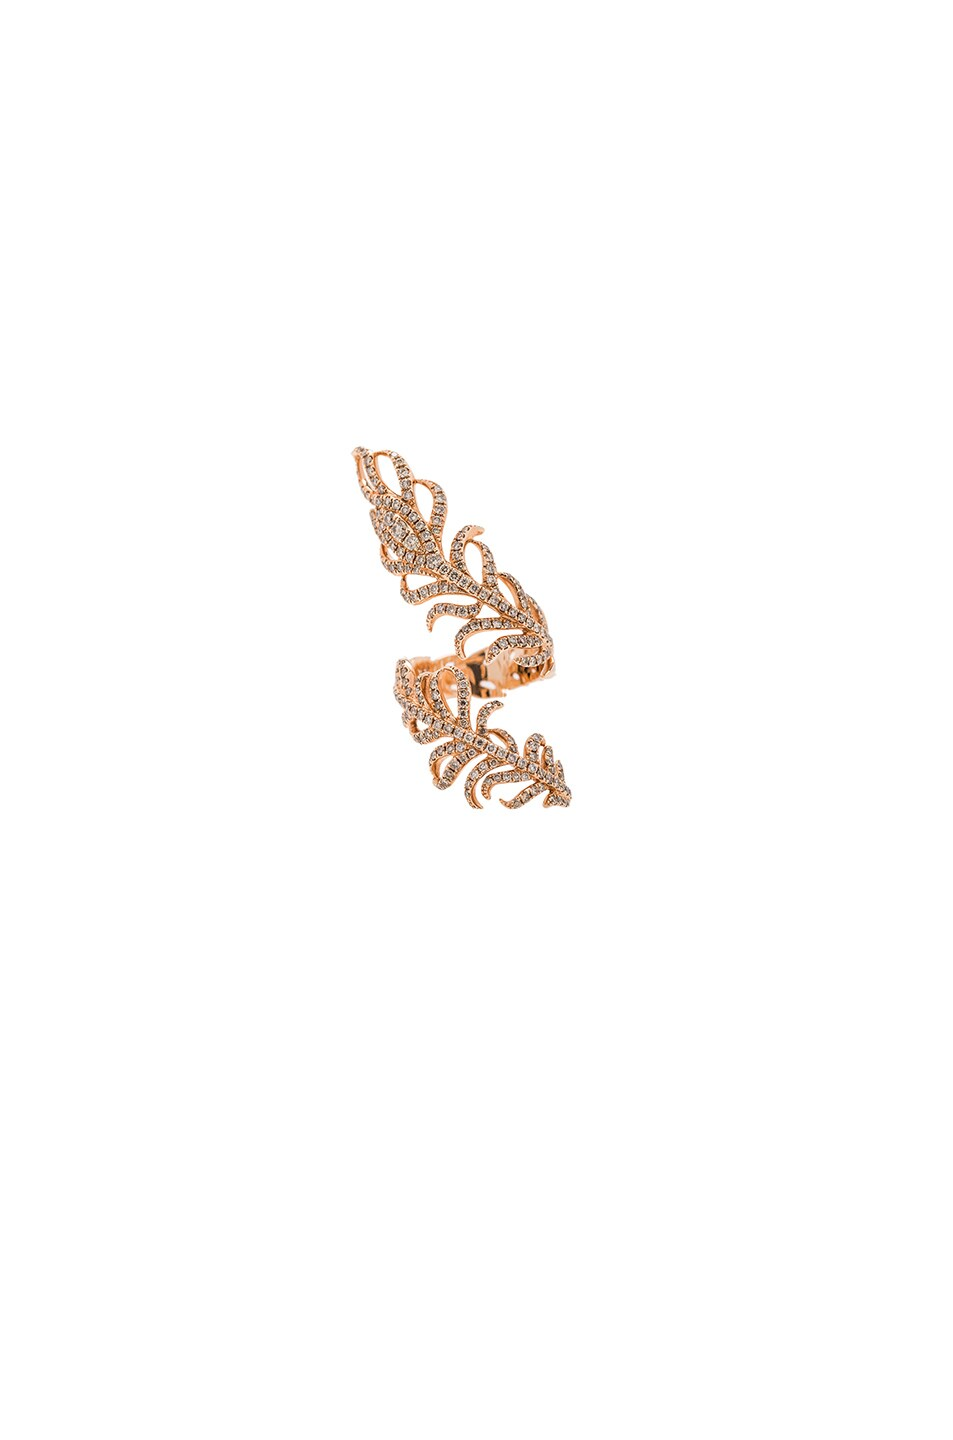 Image 1 of Elise Dray Swirl Feather Ring in Rose Gold & Brown Diamonds